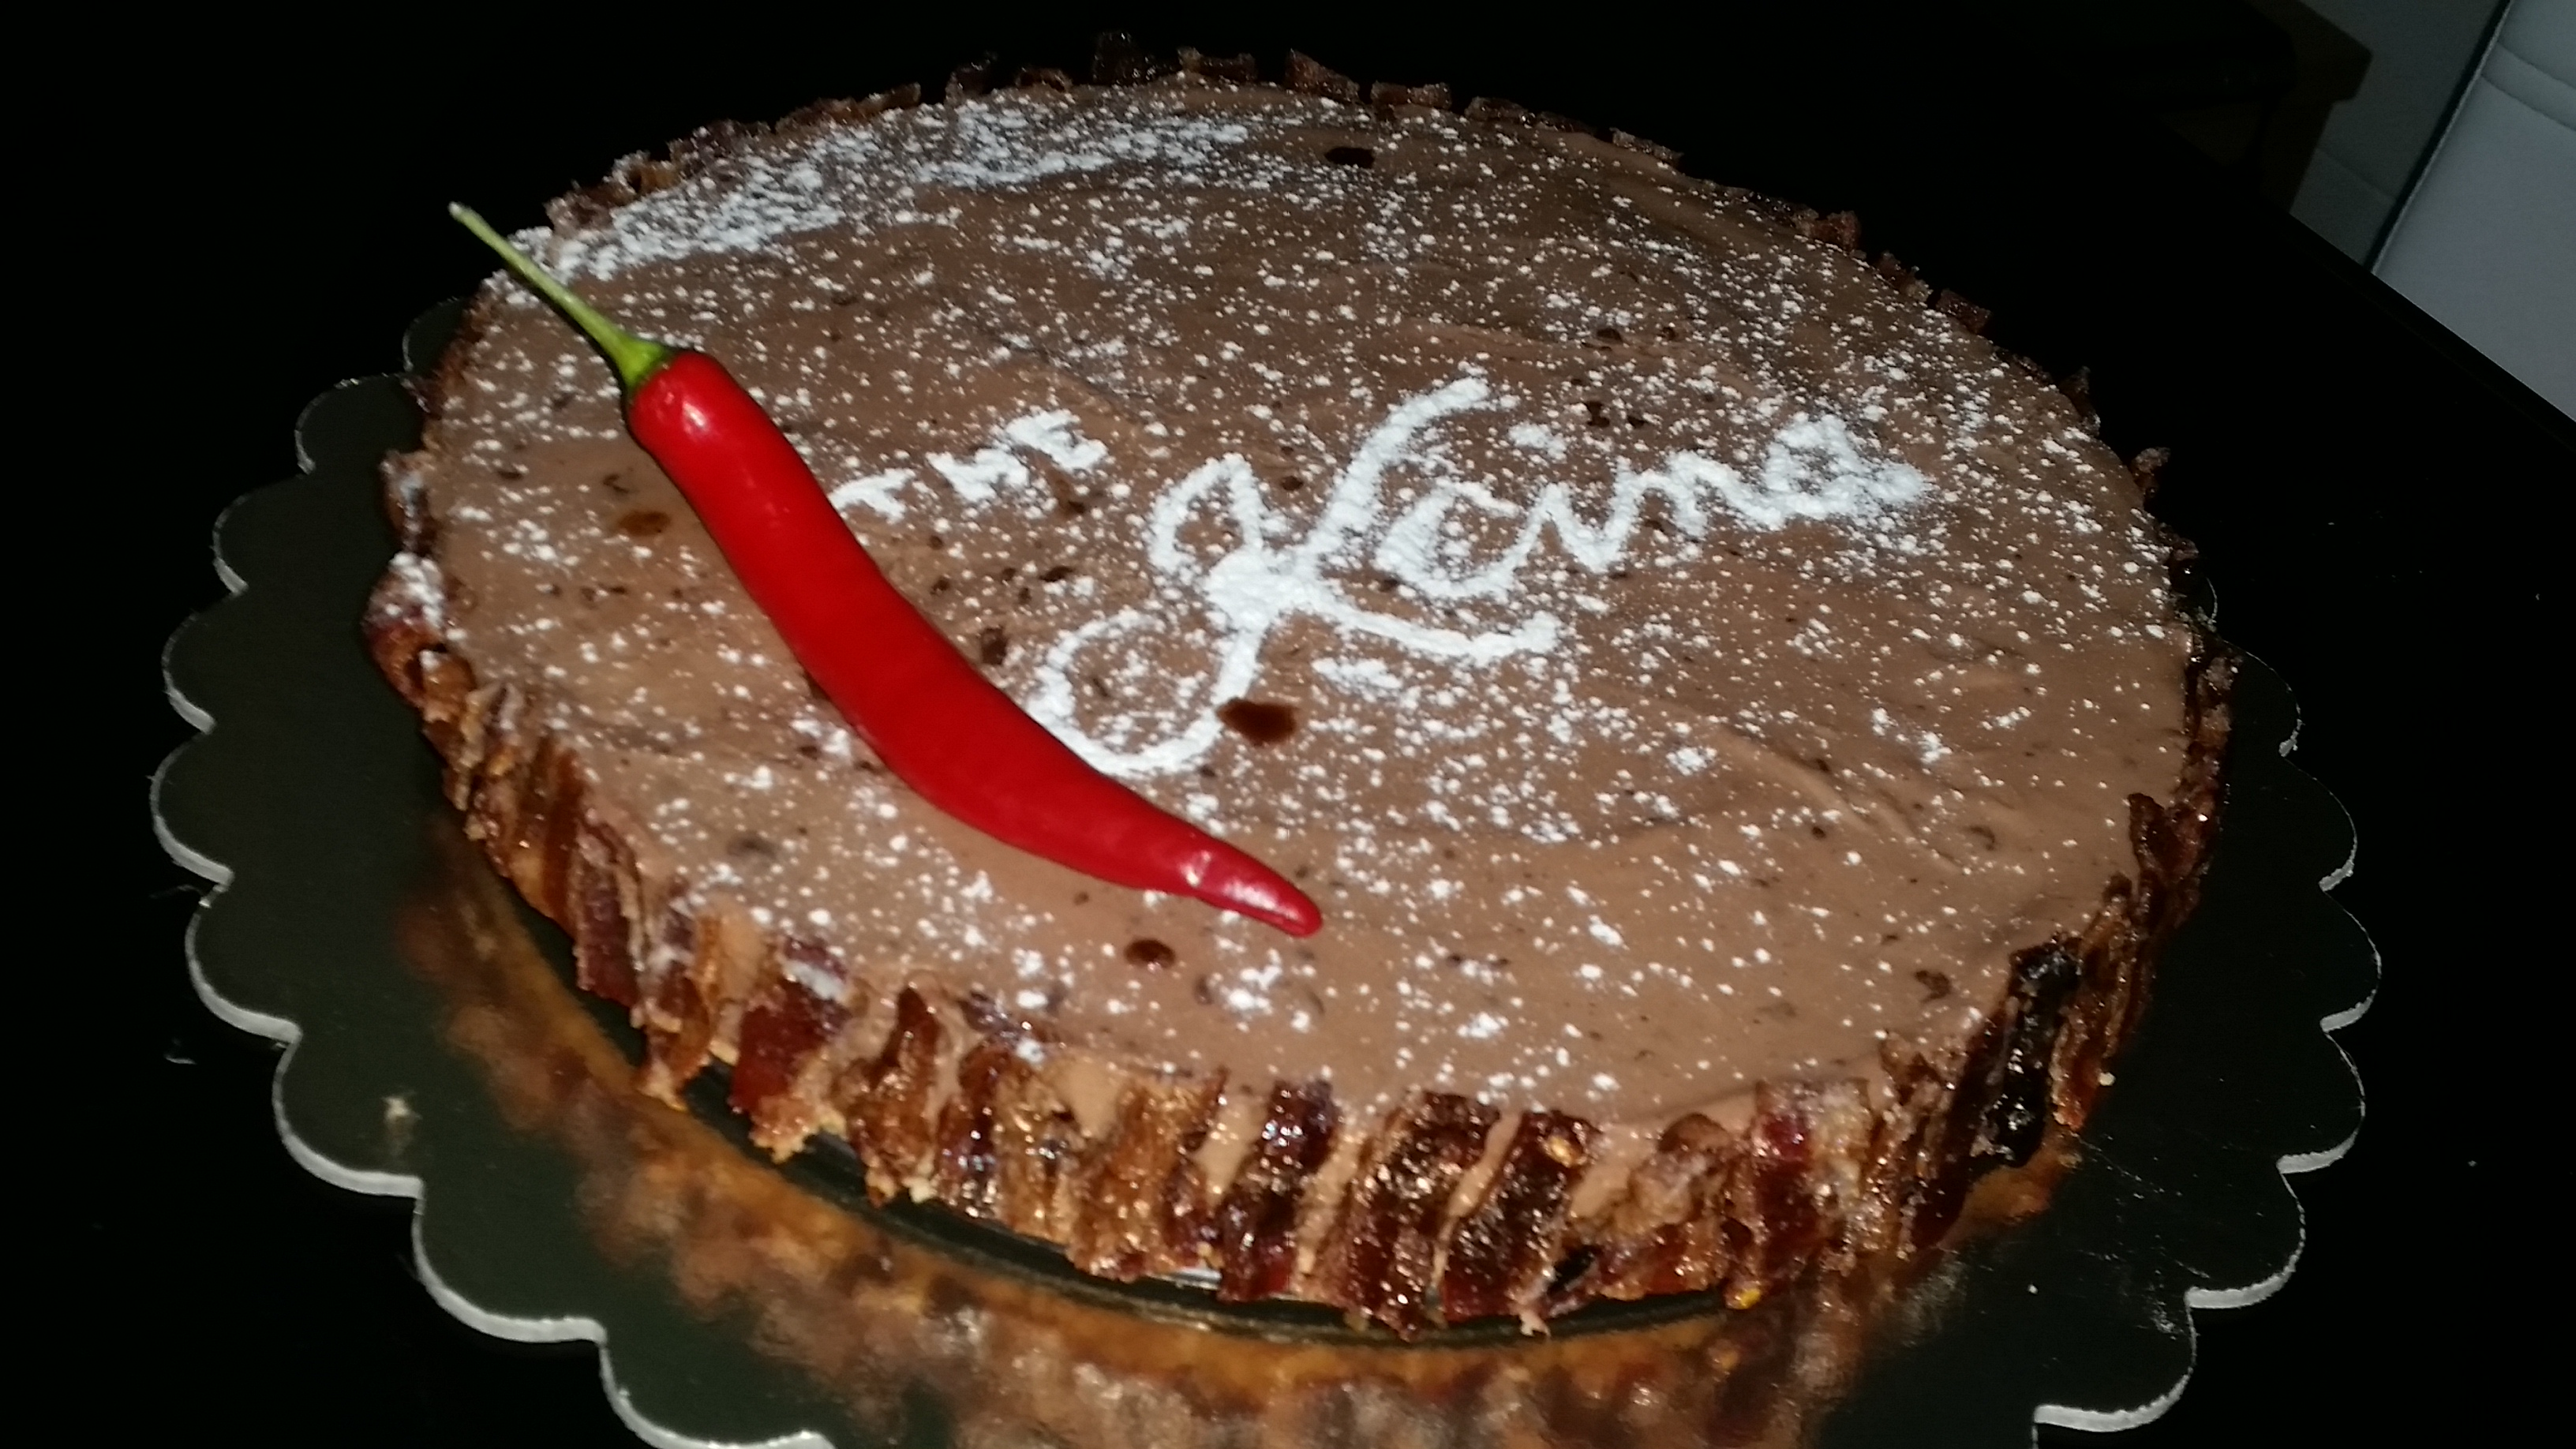 Chili chocolate and coffee cheesecake with a candied bacon crust by Mark Weston